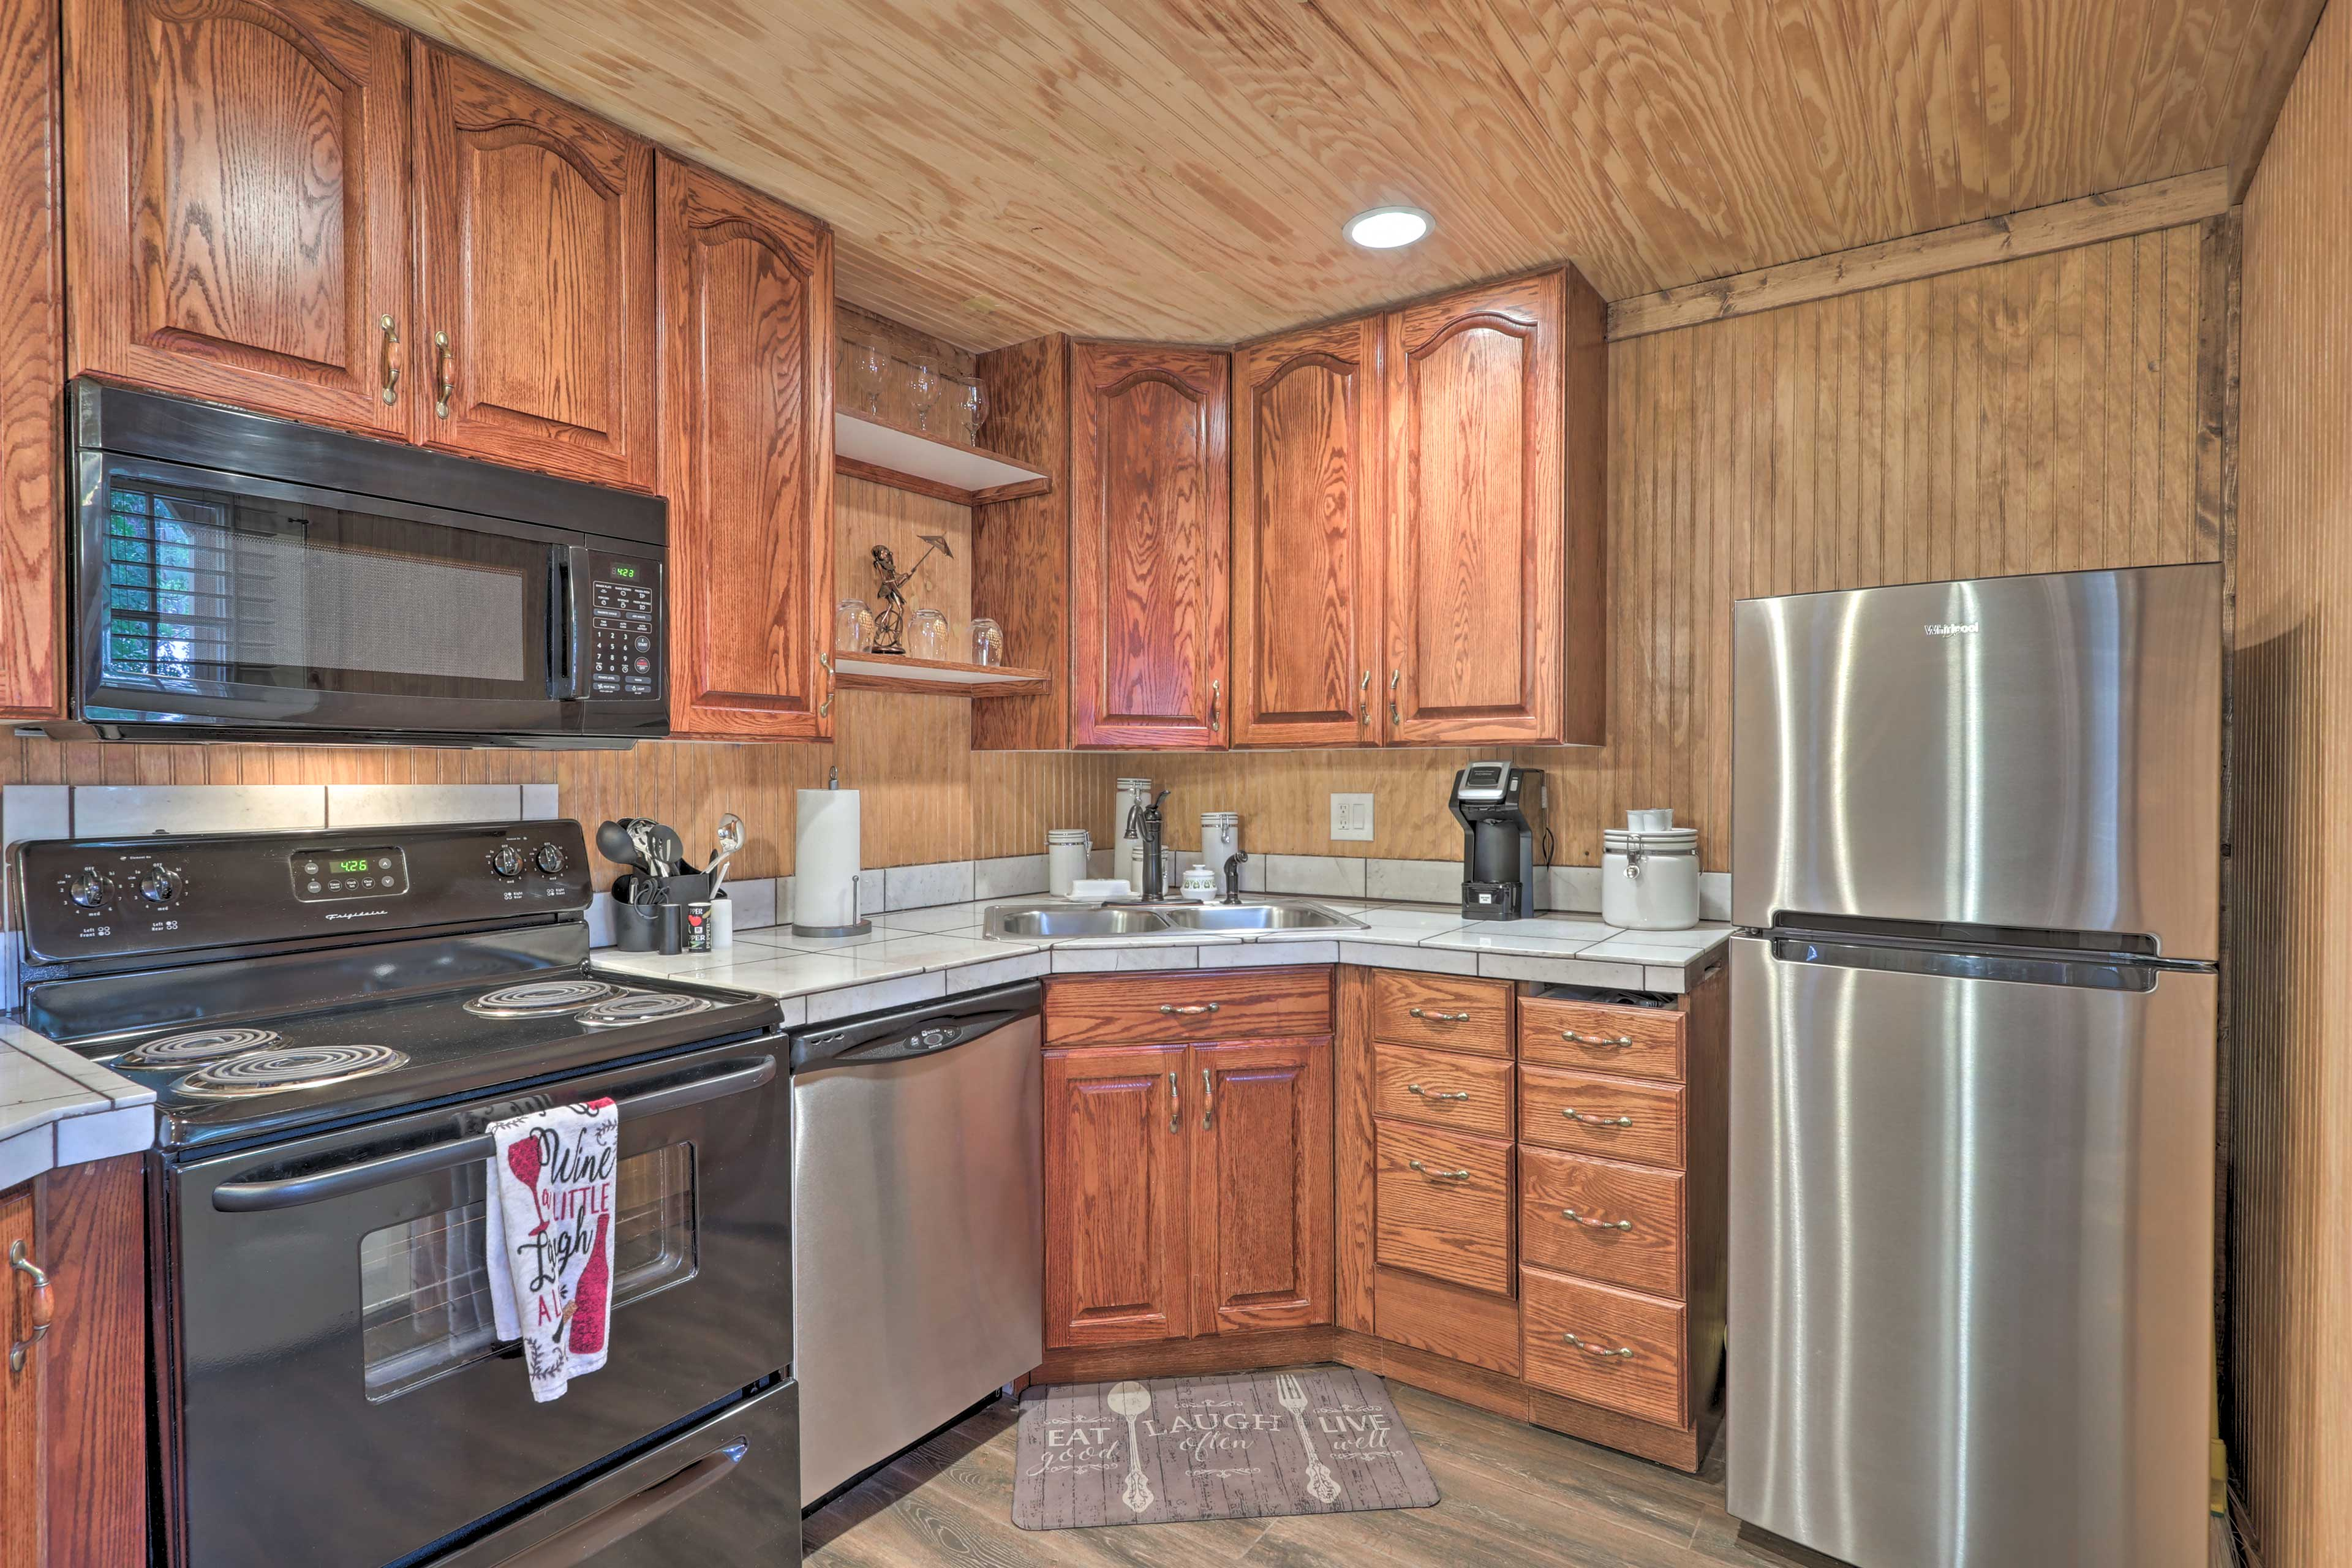 The fully equipped kitchen promises a seamless cooking experience!